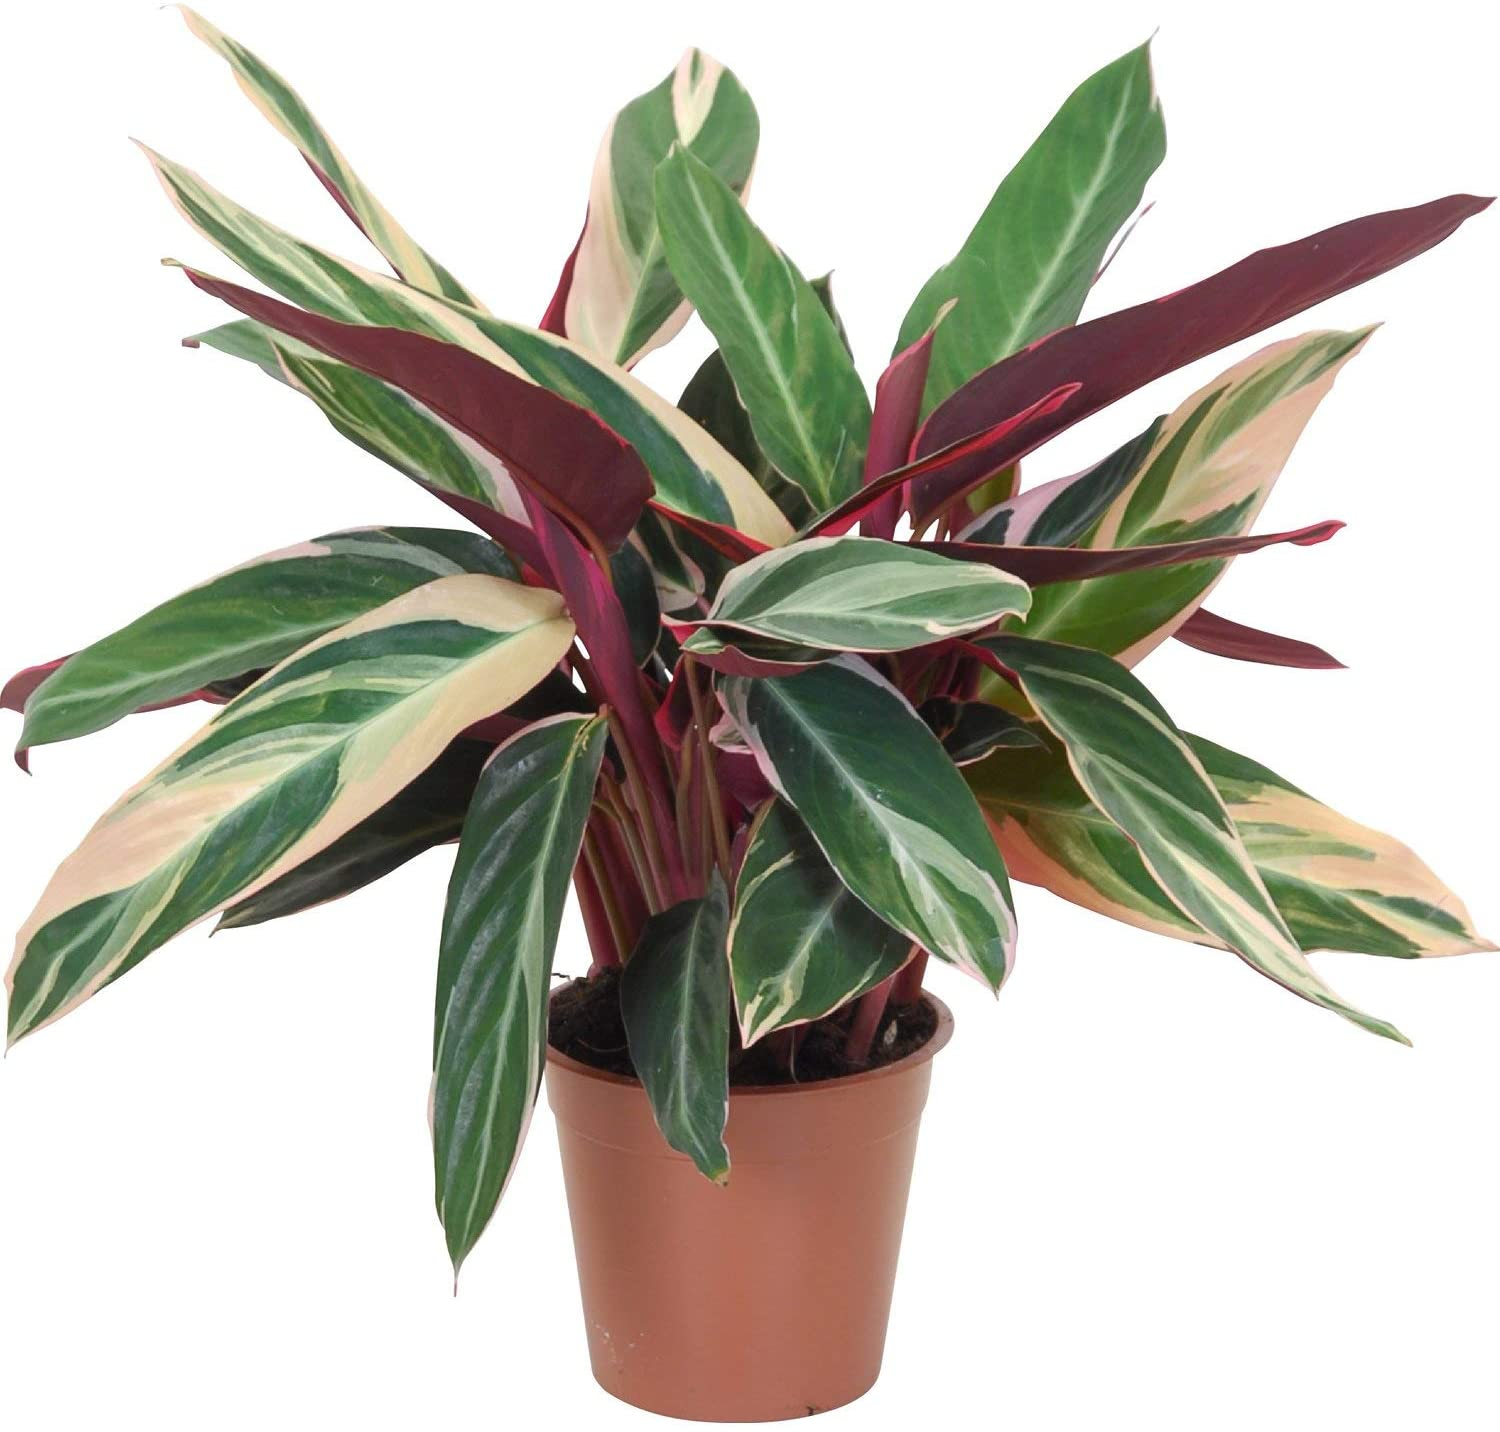 Tricolor Stromanthe Prayer Plant - Live Plant in an 6 Inch Pot - Stromanthe Sanguinea Triostar - Beautiful Easy to Grow Air Purifying Indoor Plant (5 Plants)